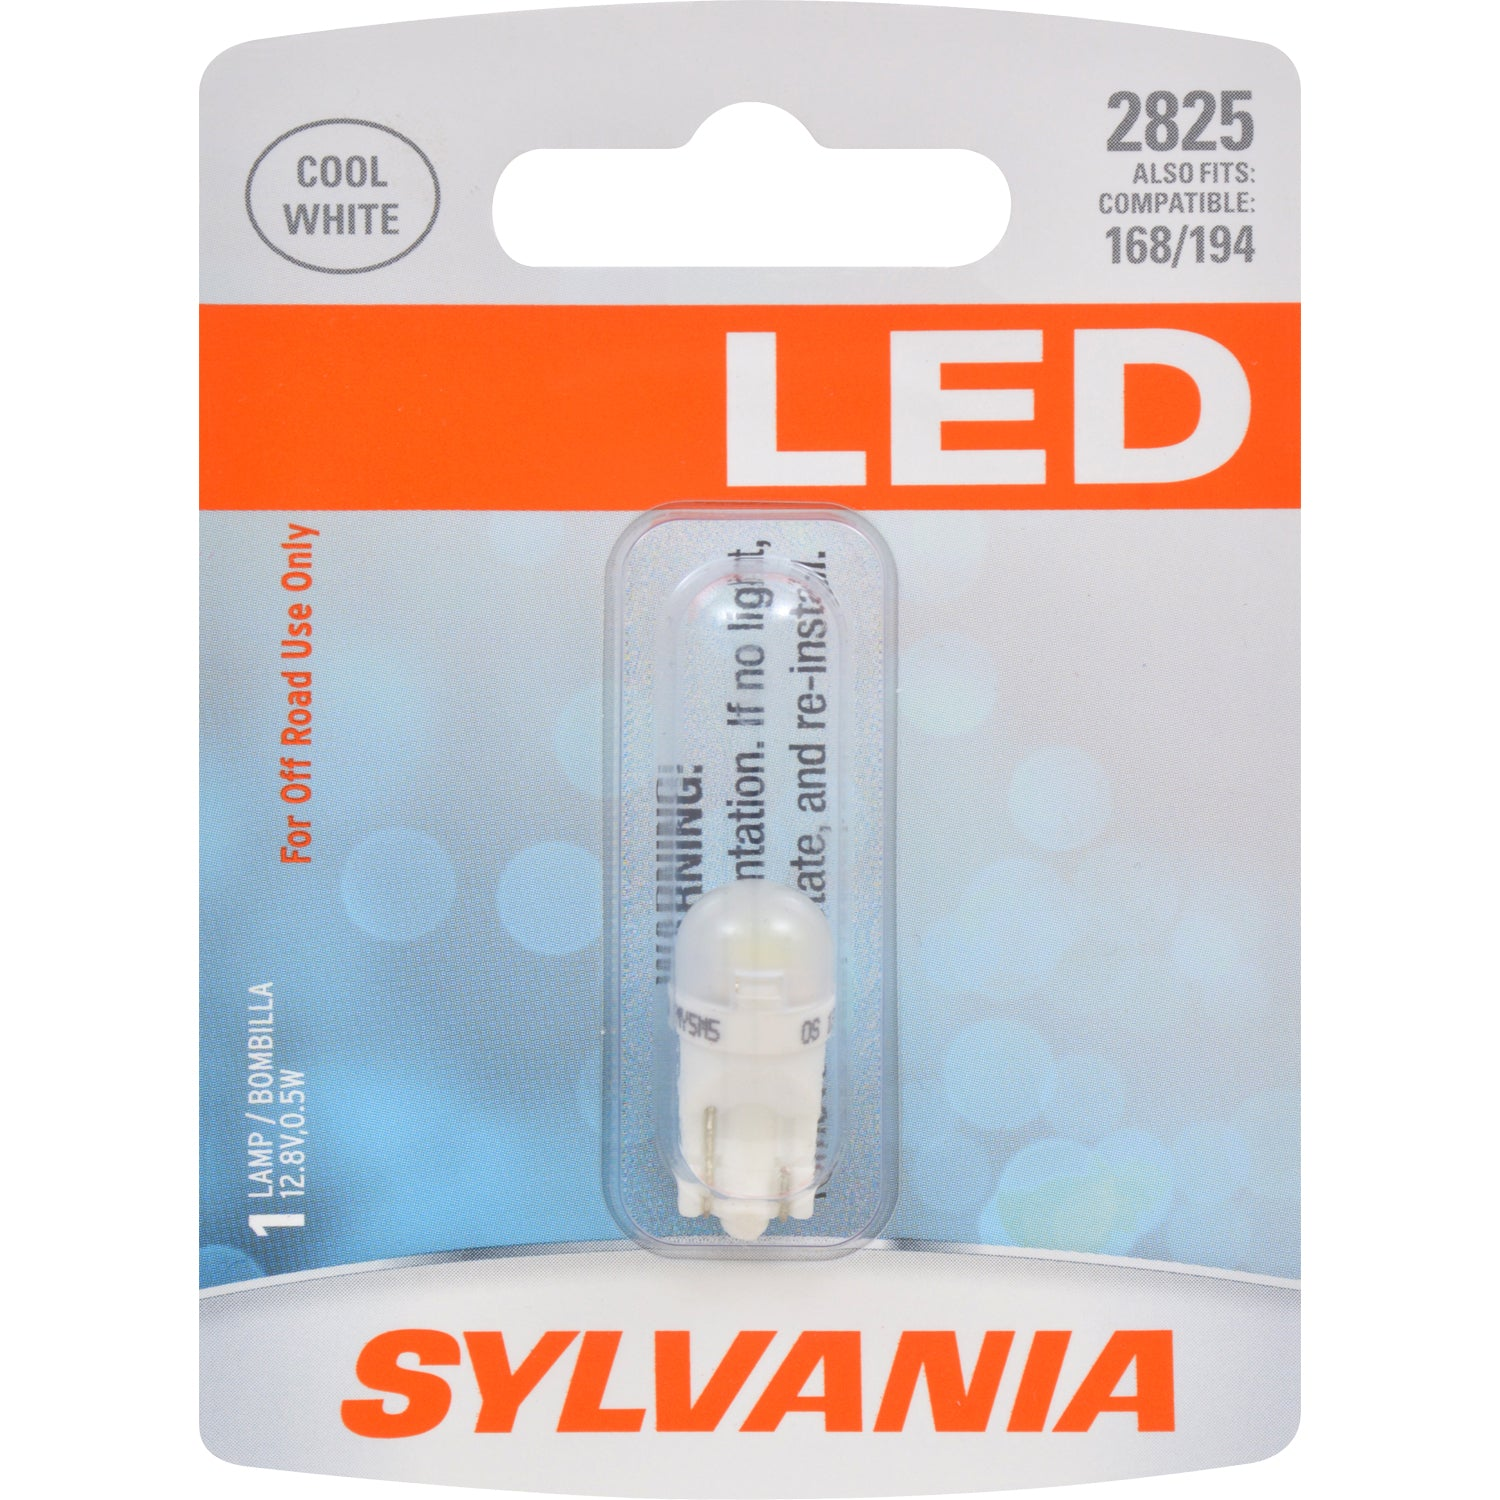 SYLVANIA 2825 LED W5W Cool White Automotive Bulb - also fits 168, 194